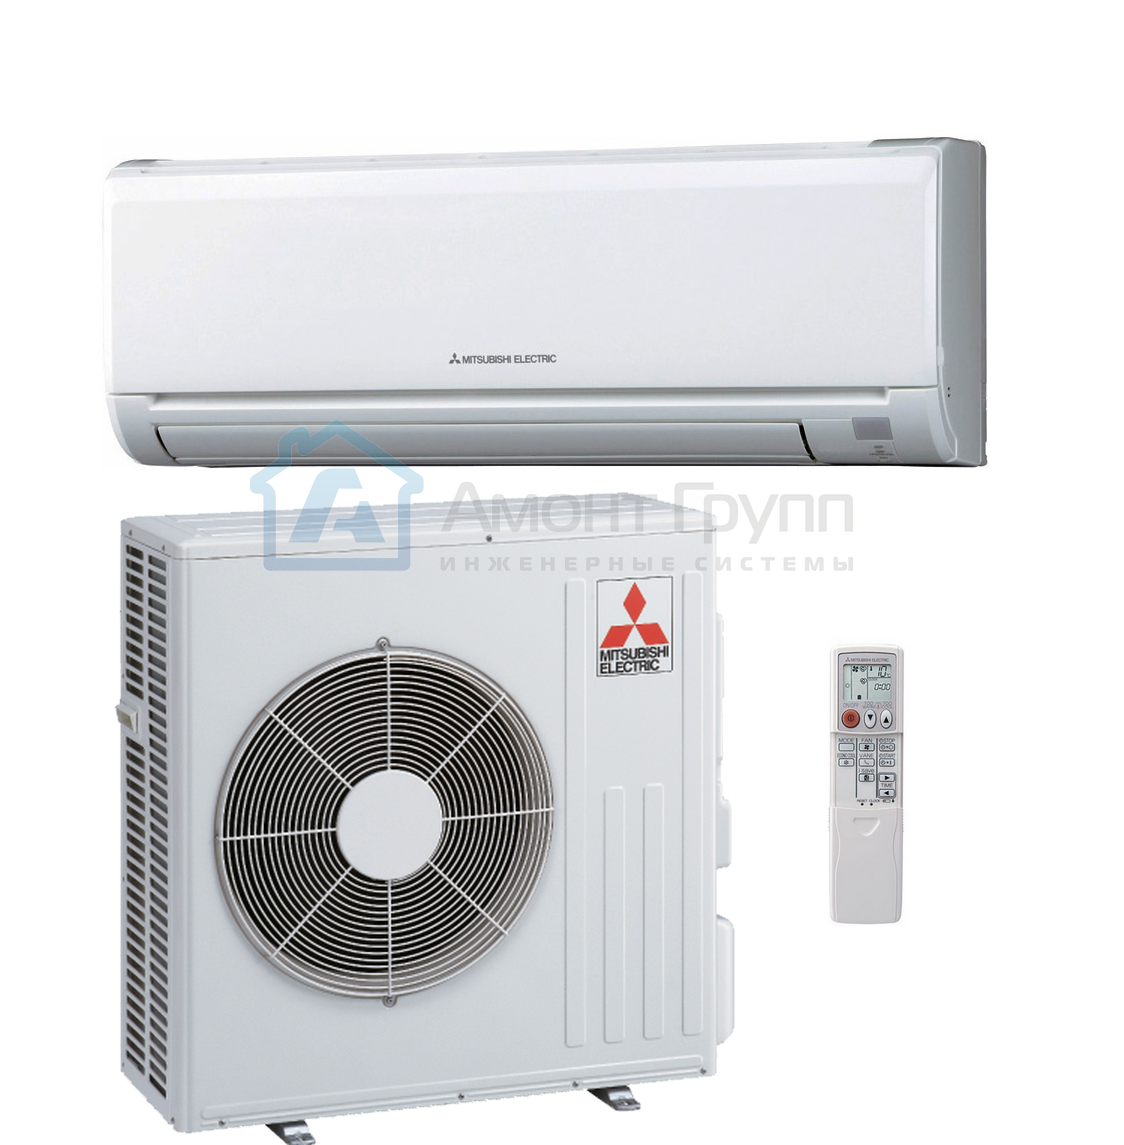 Настенная сплит-система Mitsubishi Electric MS-GF80VA/MU-GF80VA